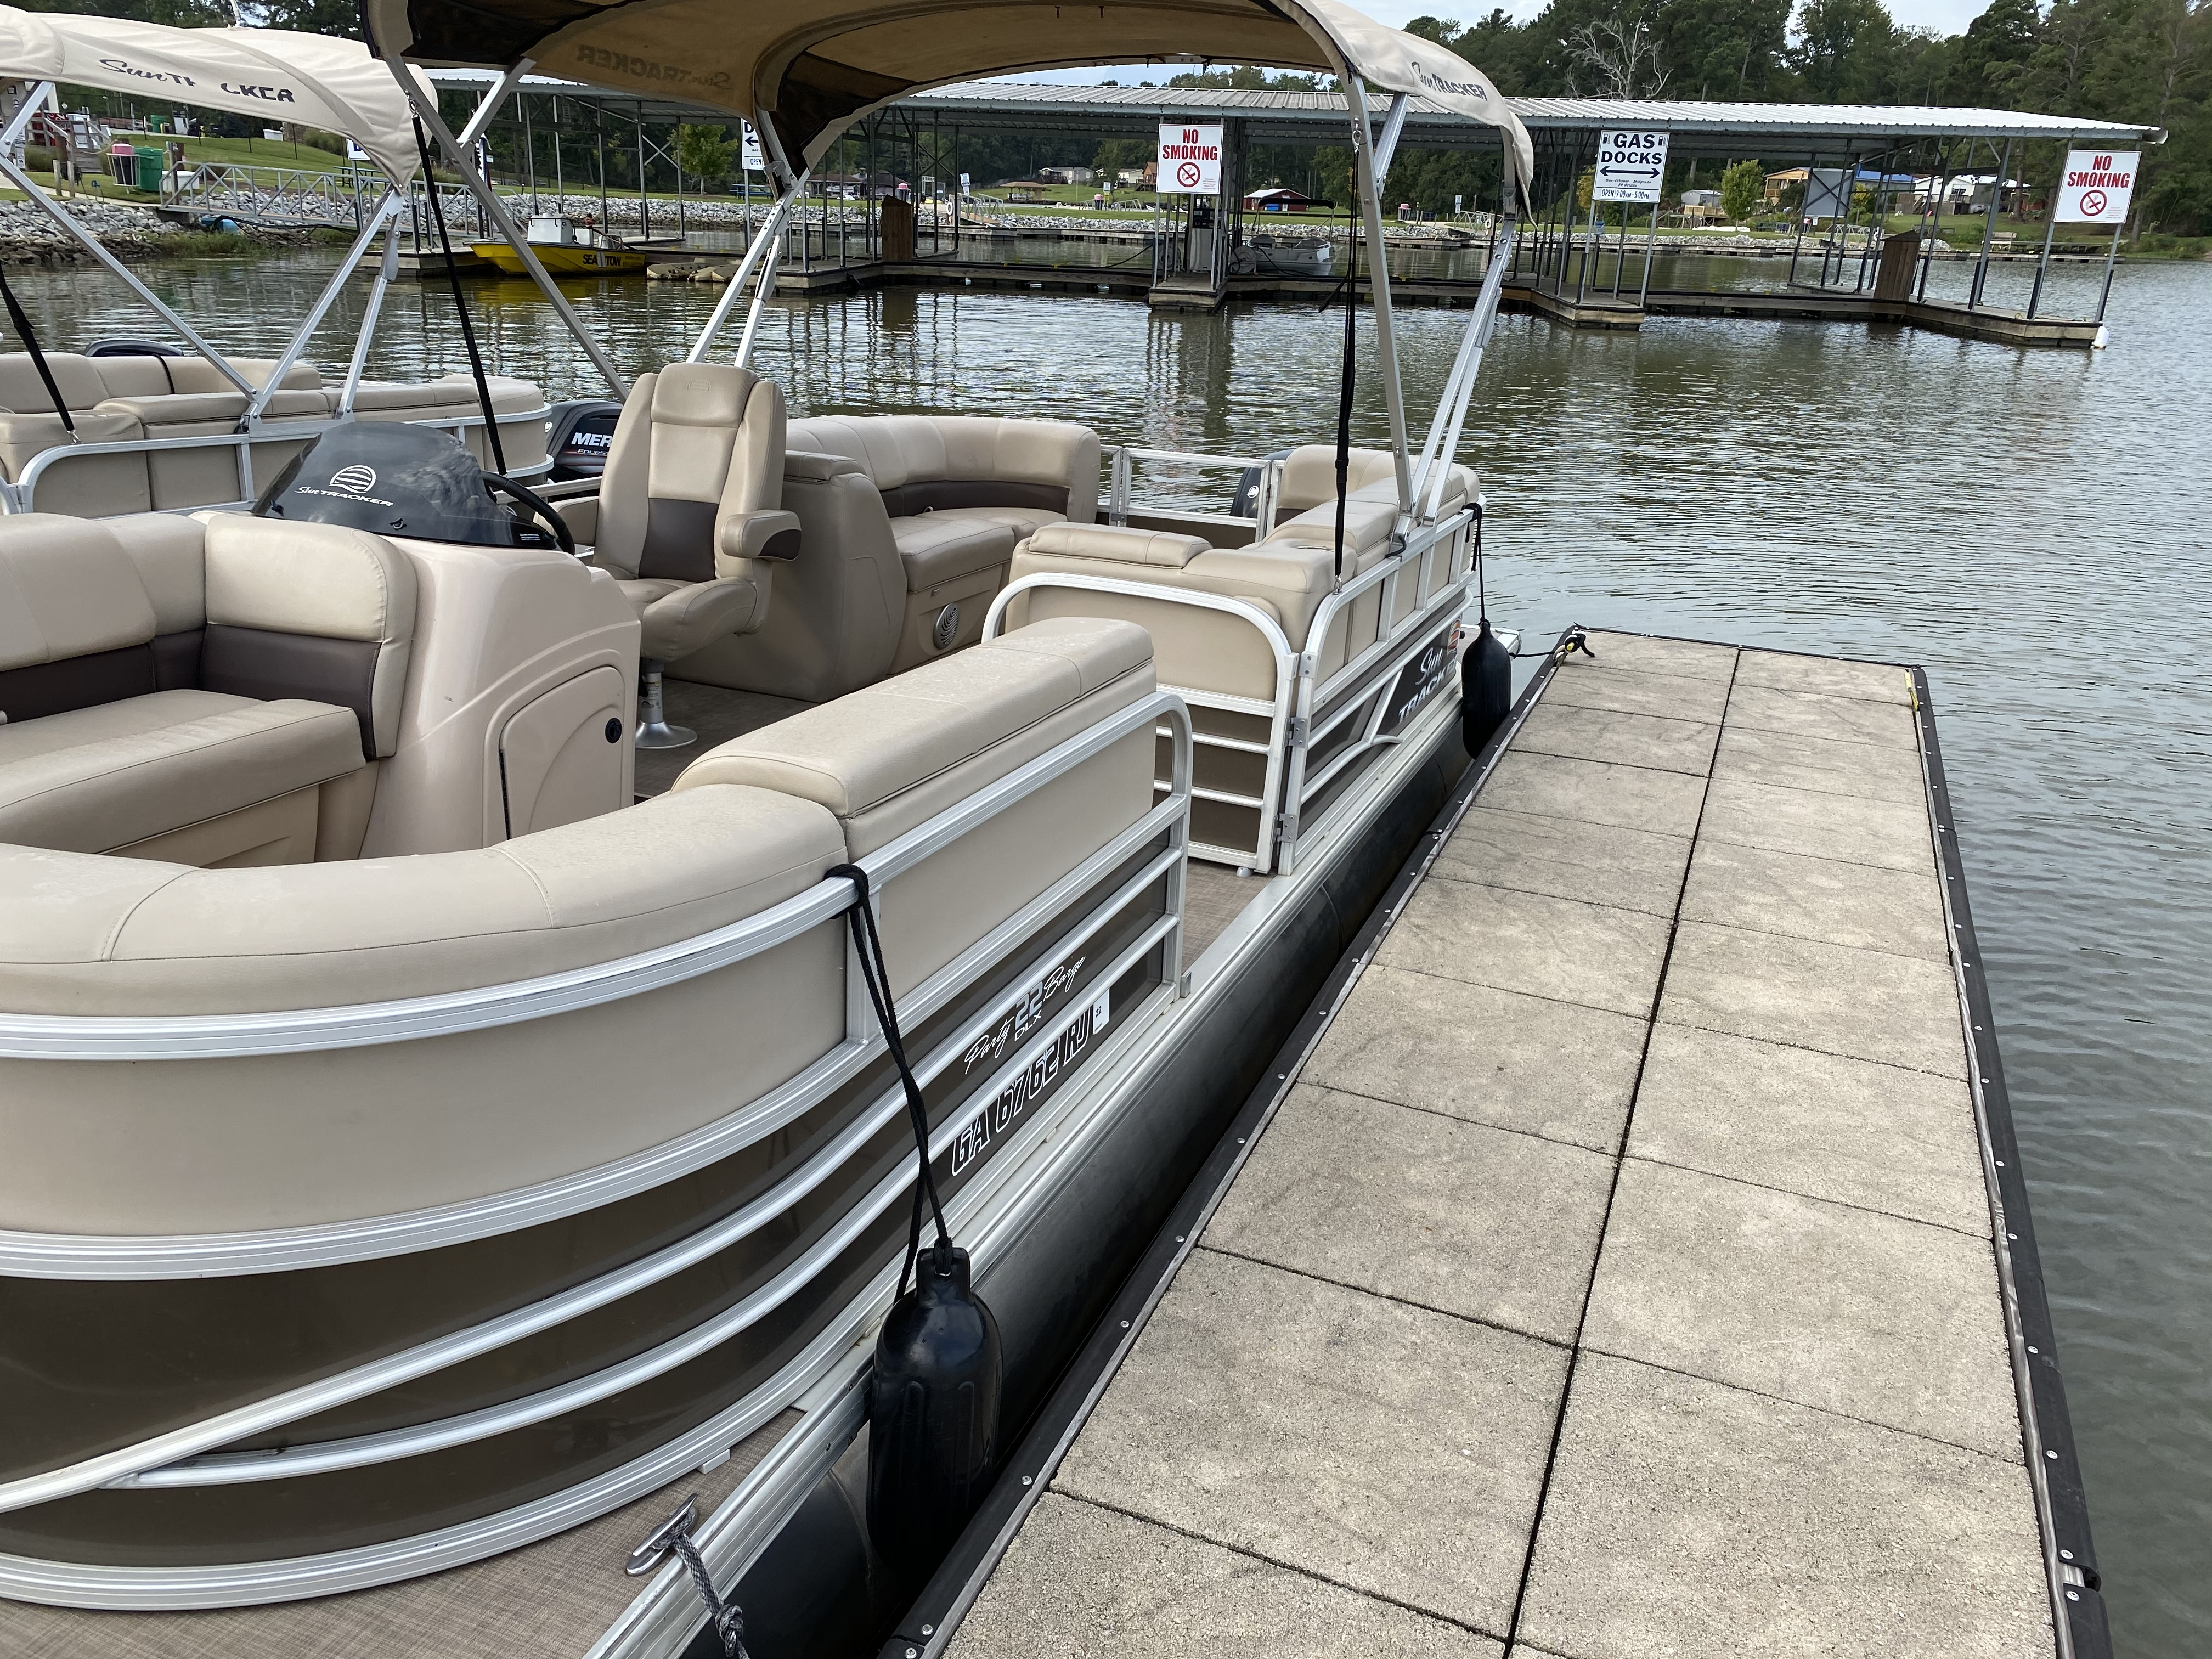 2019 Sun Tracker boat for sale, model of the boat is PARTY BARGE 22 w/ Mercury 115Hp 4S & Image # 11 of 21